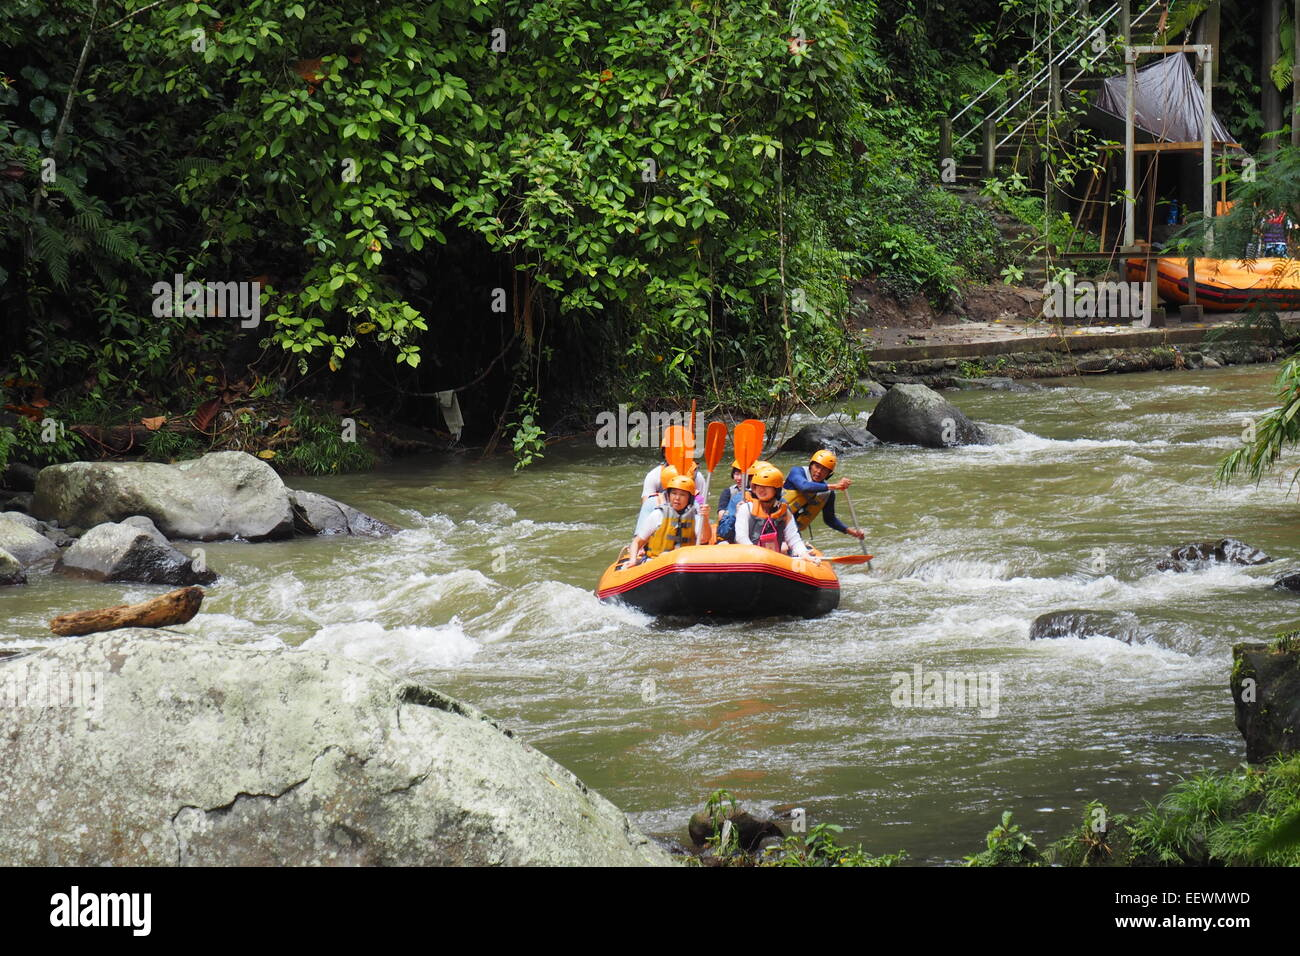 Group Of People White Water Rafting On The Ayung River Ubud Bali Stock Photo Alamy